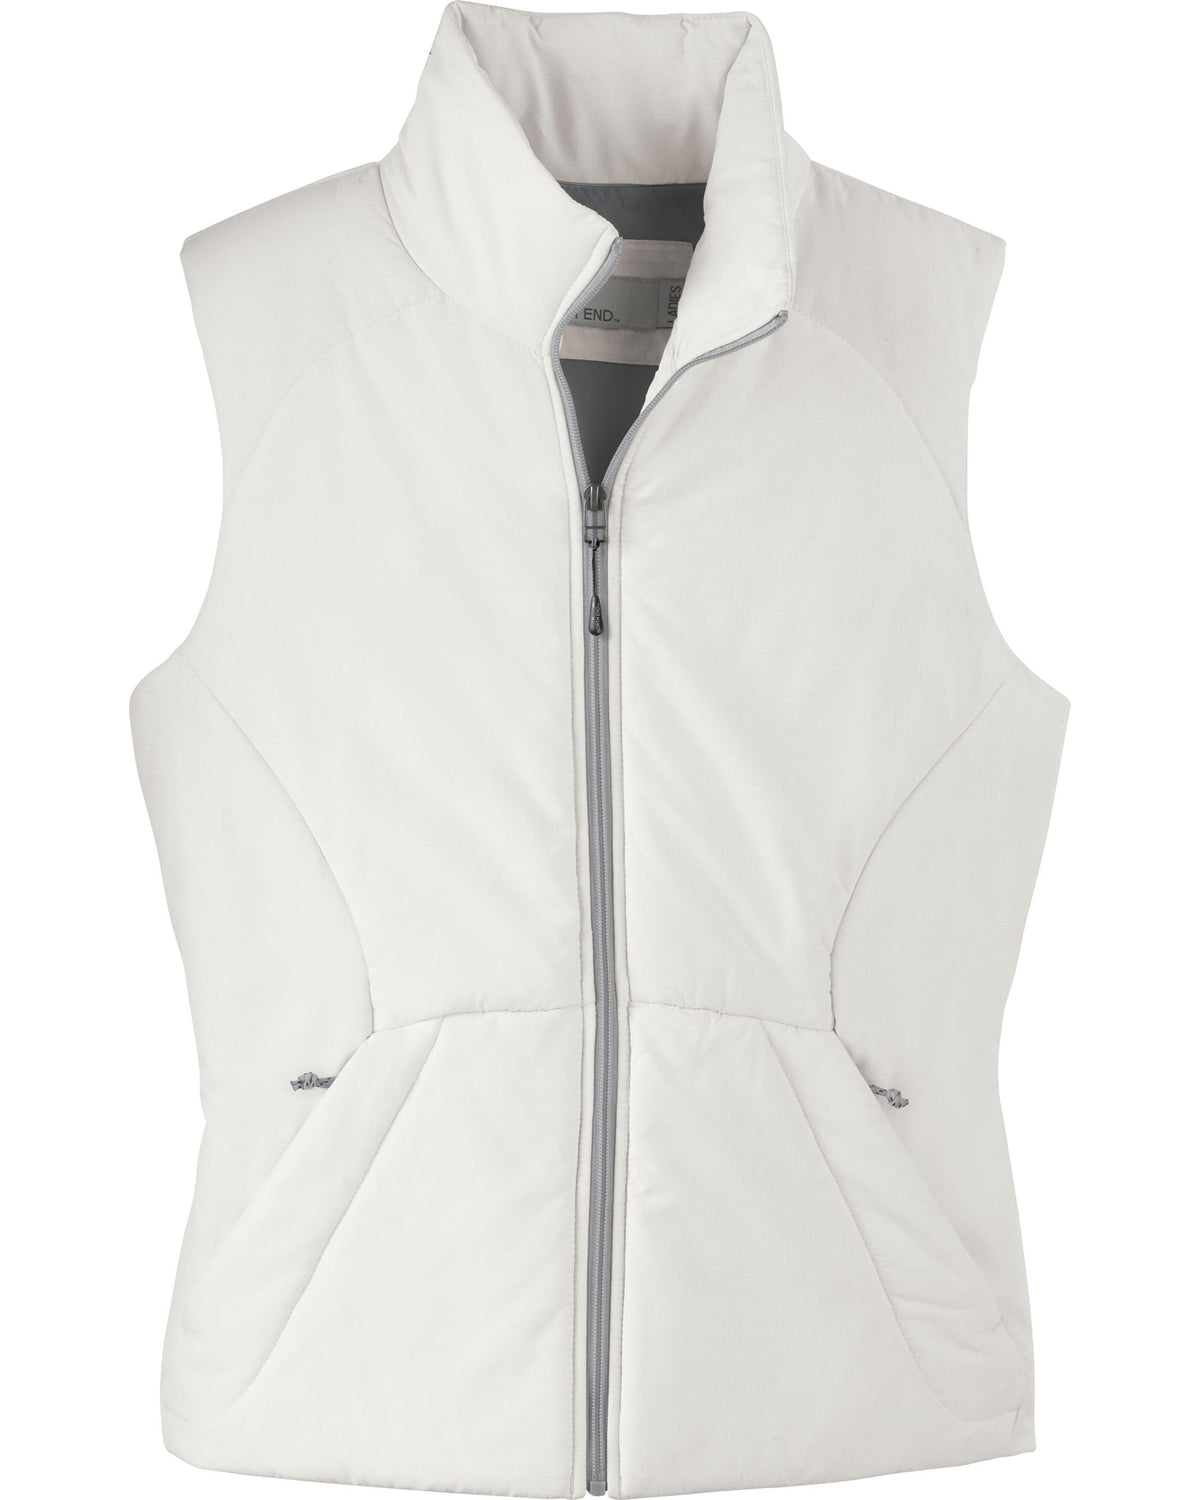 NORTH END LADIES RIPSTOP INSULATED VEST